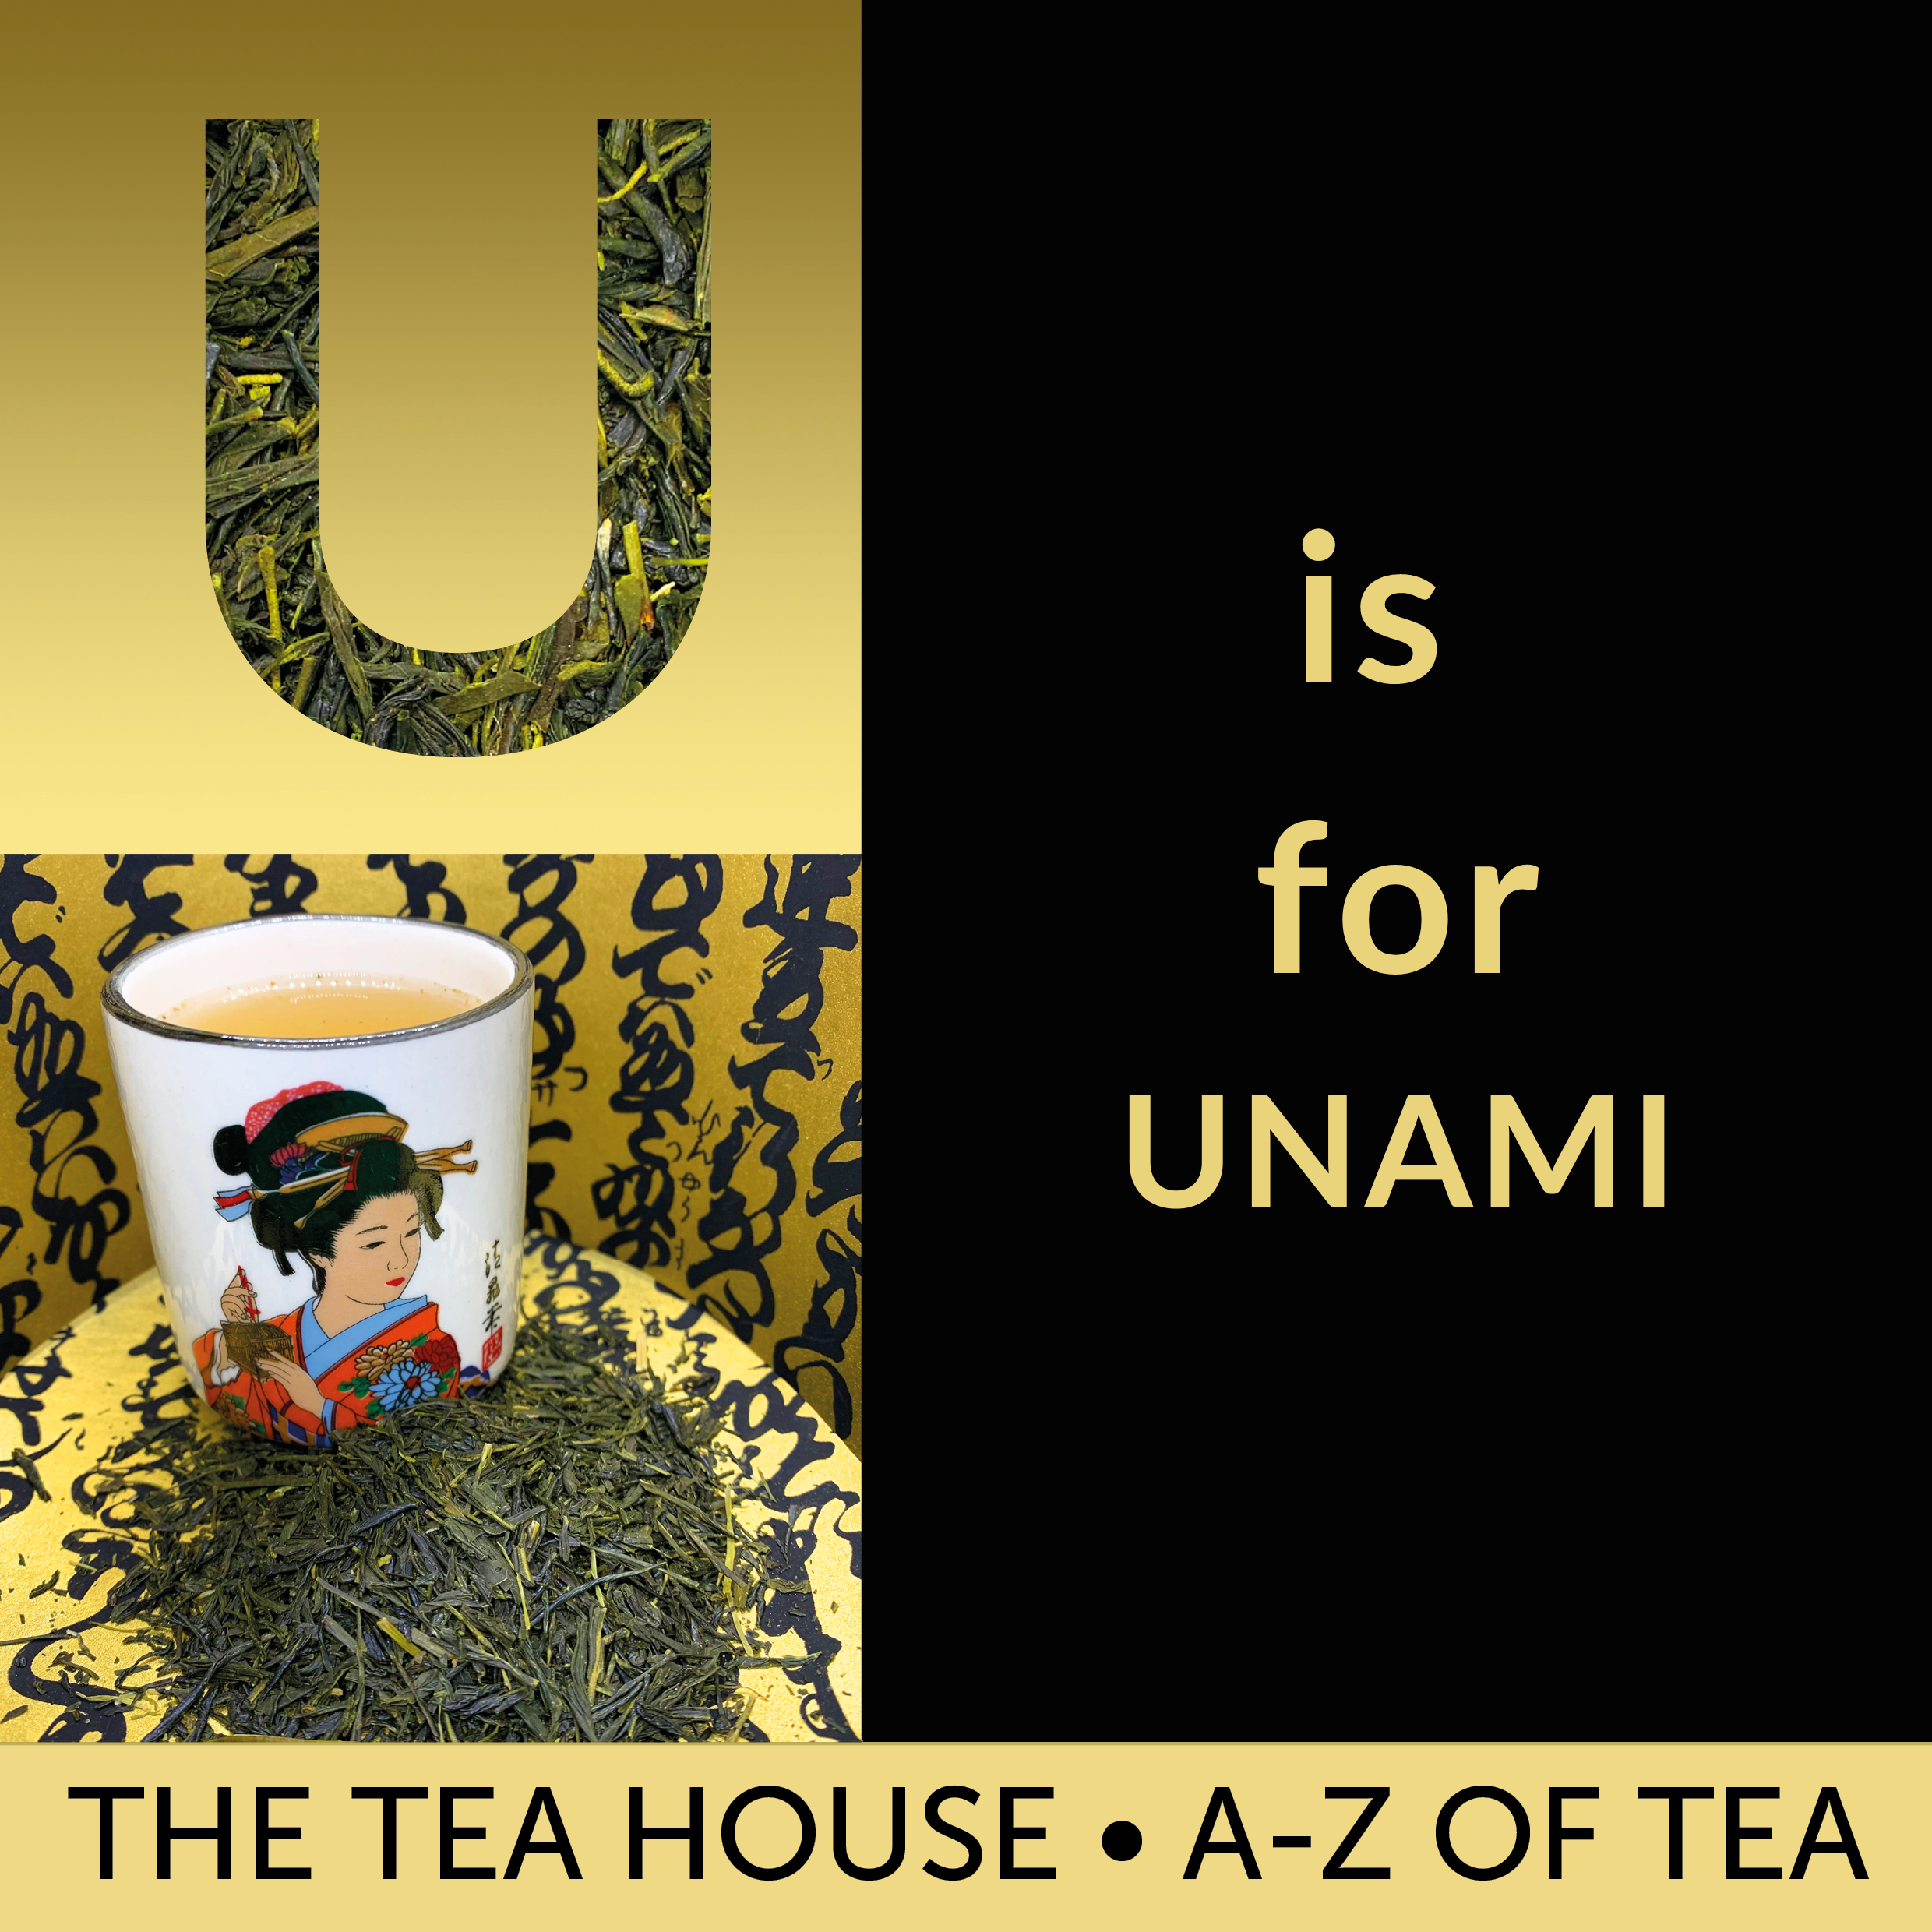 U is for Umami